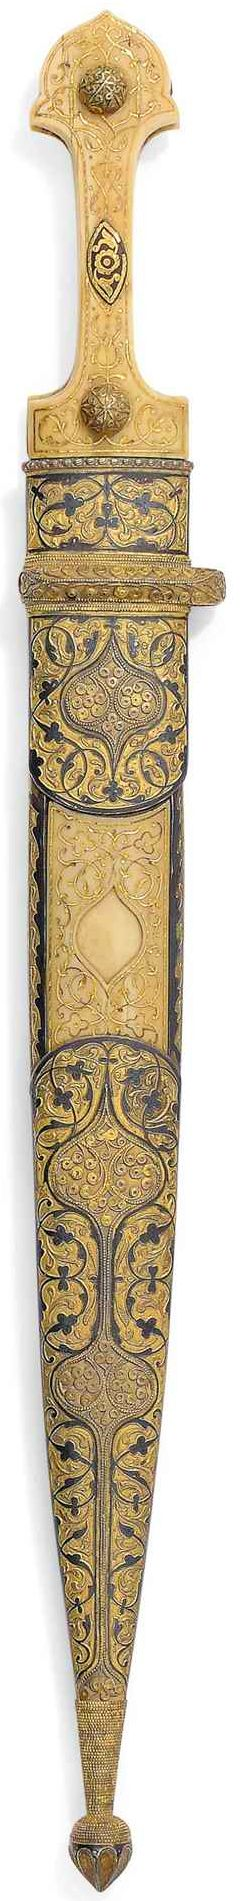 "Ottoman (Caucasus) qama / kindjal dagger, dated AH1292 (1875-6), of typical form, the hilt and scabbard finely worked with dense floral arabesques, the mounts with delicate silver-gilt filigree medallions, the hilt with applied filigree bosses, the hilt and scabbard signed ""Majid Dhimmi"" (?), with the name of the owner ""Muhammad Ibrahim Khan"" in gold overlaid on the blade, 19 1/8in. (48.7cm.) long."